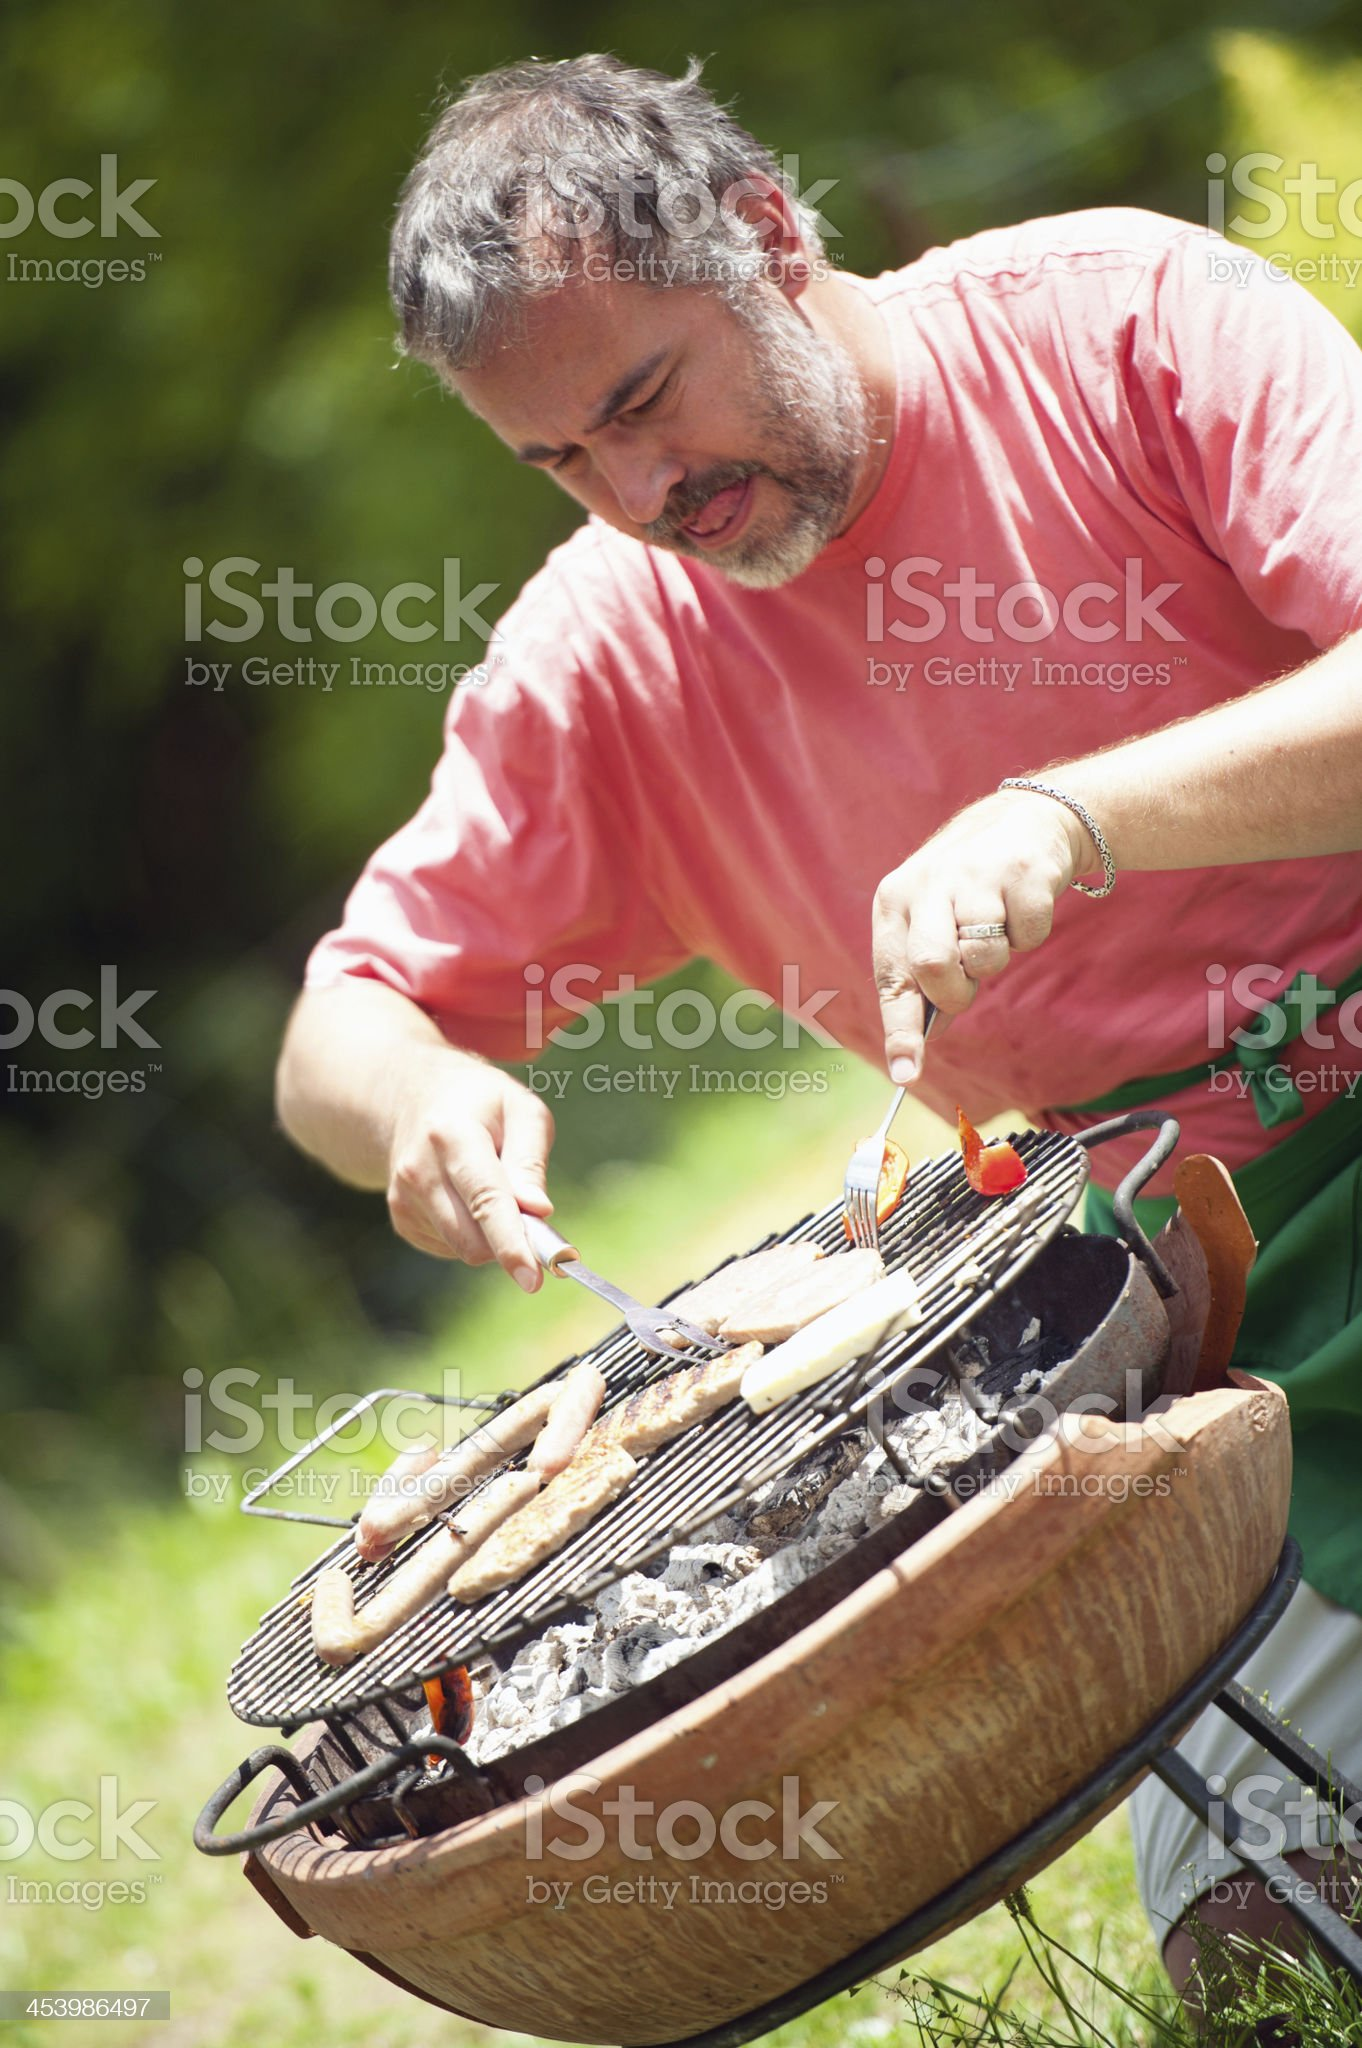 BBQ royalty-free stock photo